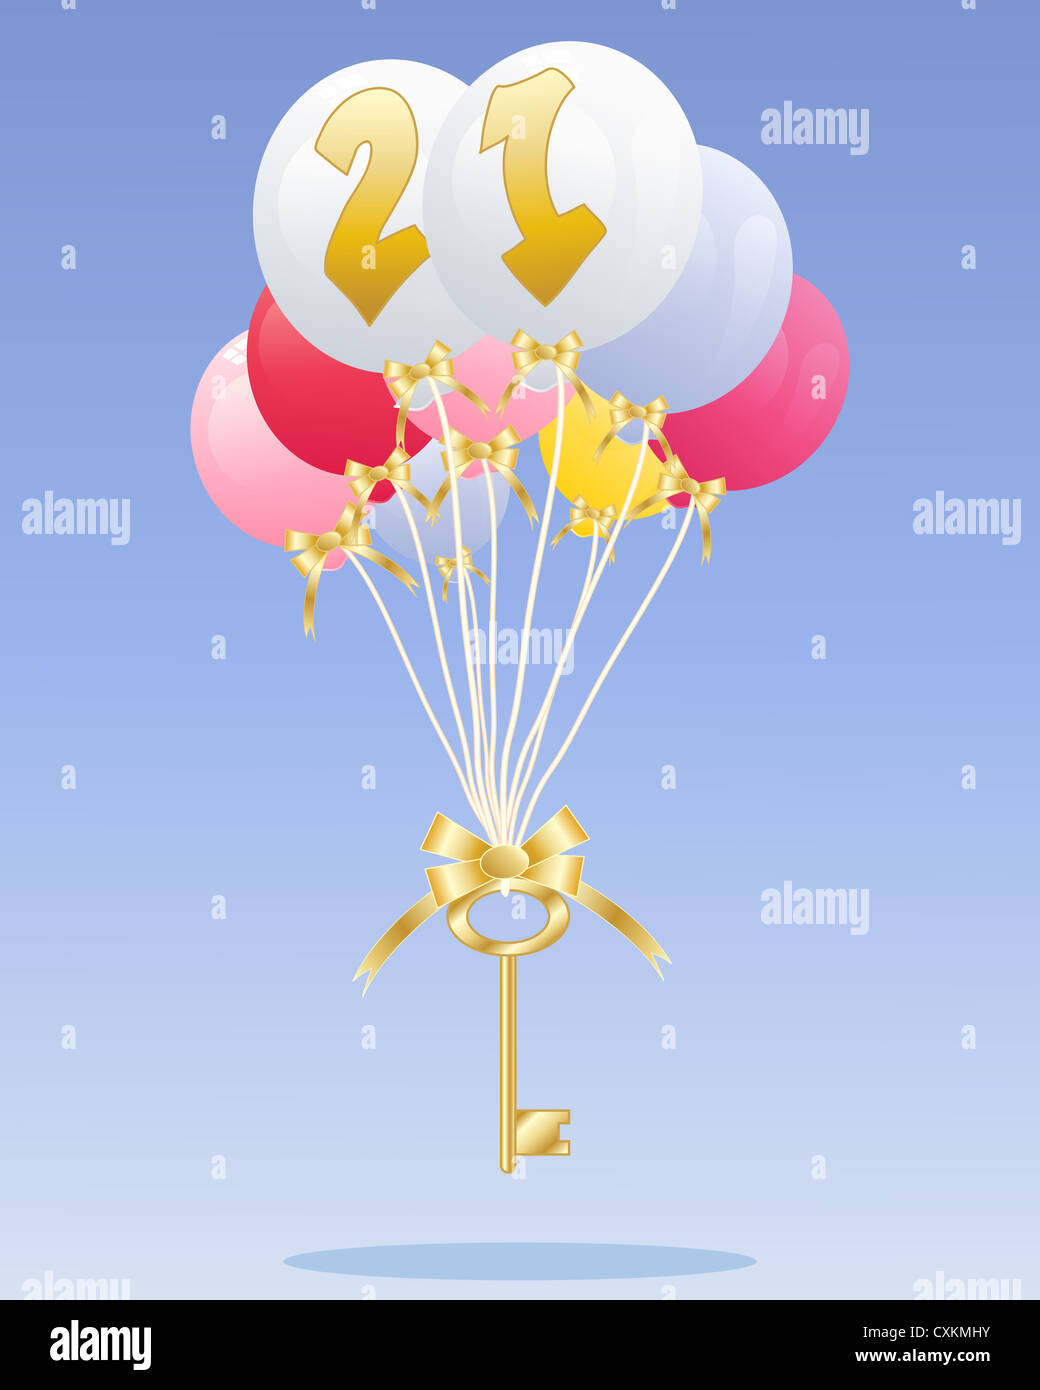 an illustration of a group of colorful balloons with the number 21 in gold floating with a golden key on a blue - Stock Image